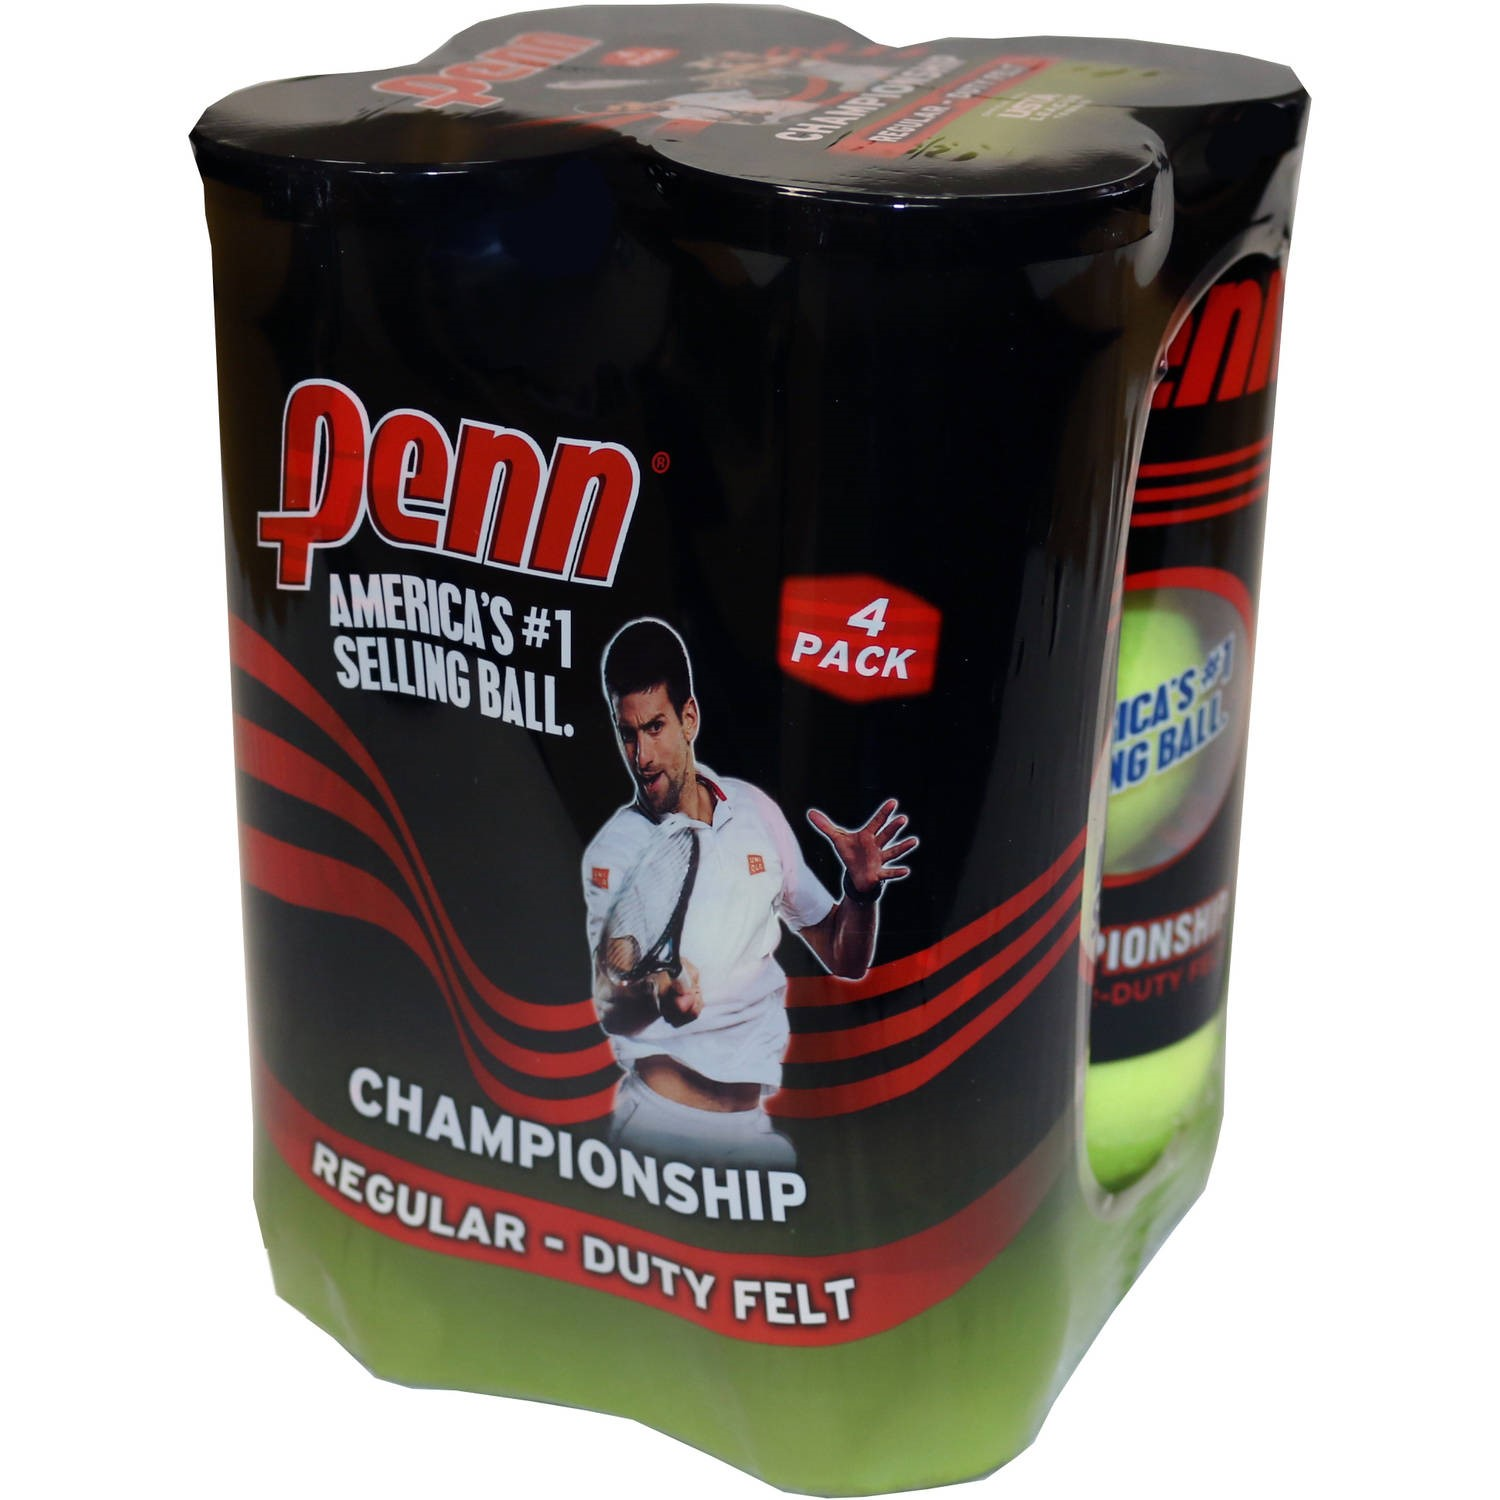 Penn Championship Regular Duty Tennis Balls - 4 pack (Shrink wrapped)